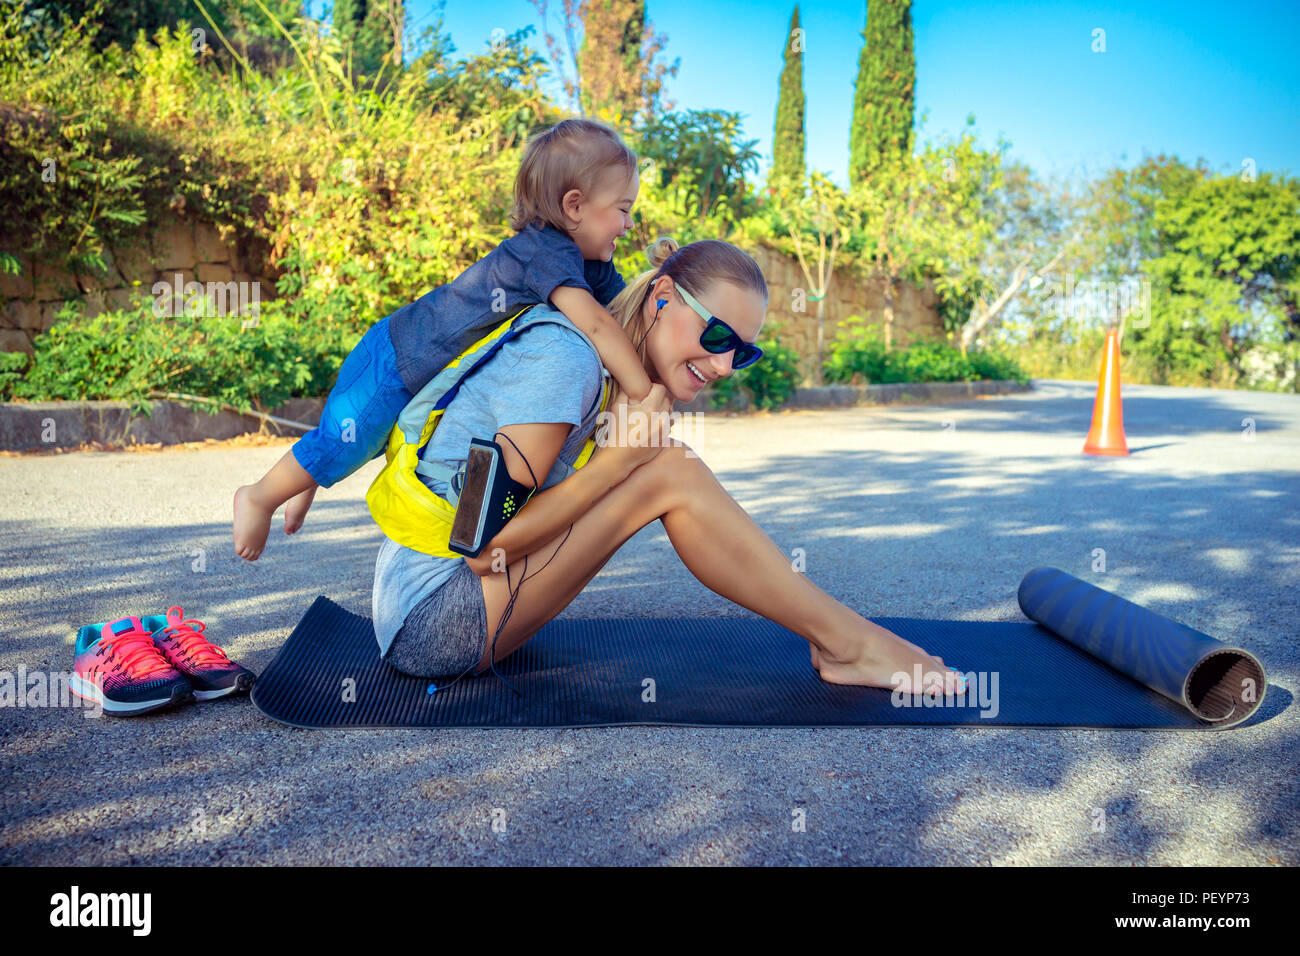 Sportive mother with child outdoors doing fitness excercise,  happy family together on workout, active healthy lifestyle - Stock Image